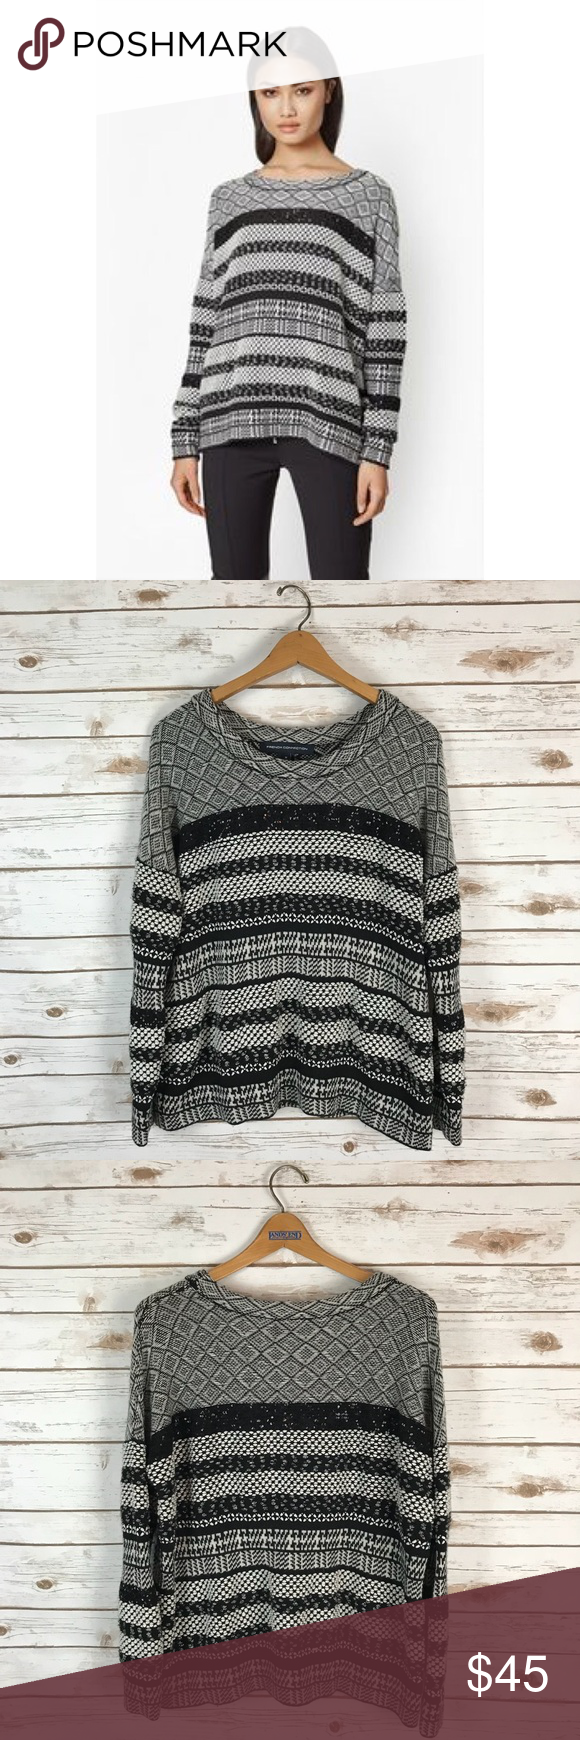 147d2dd1e527f French Connection Sequin Fair Isle Sweater This sweater is so cute and  perfect for fall and